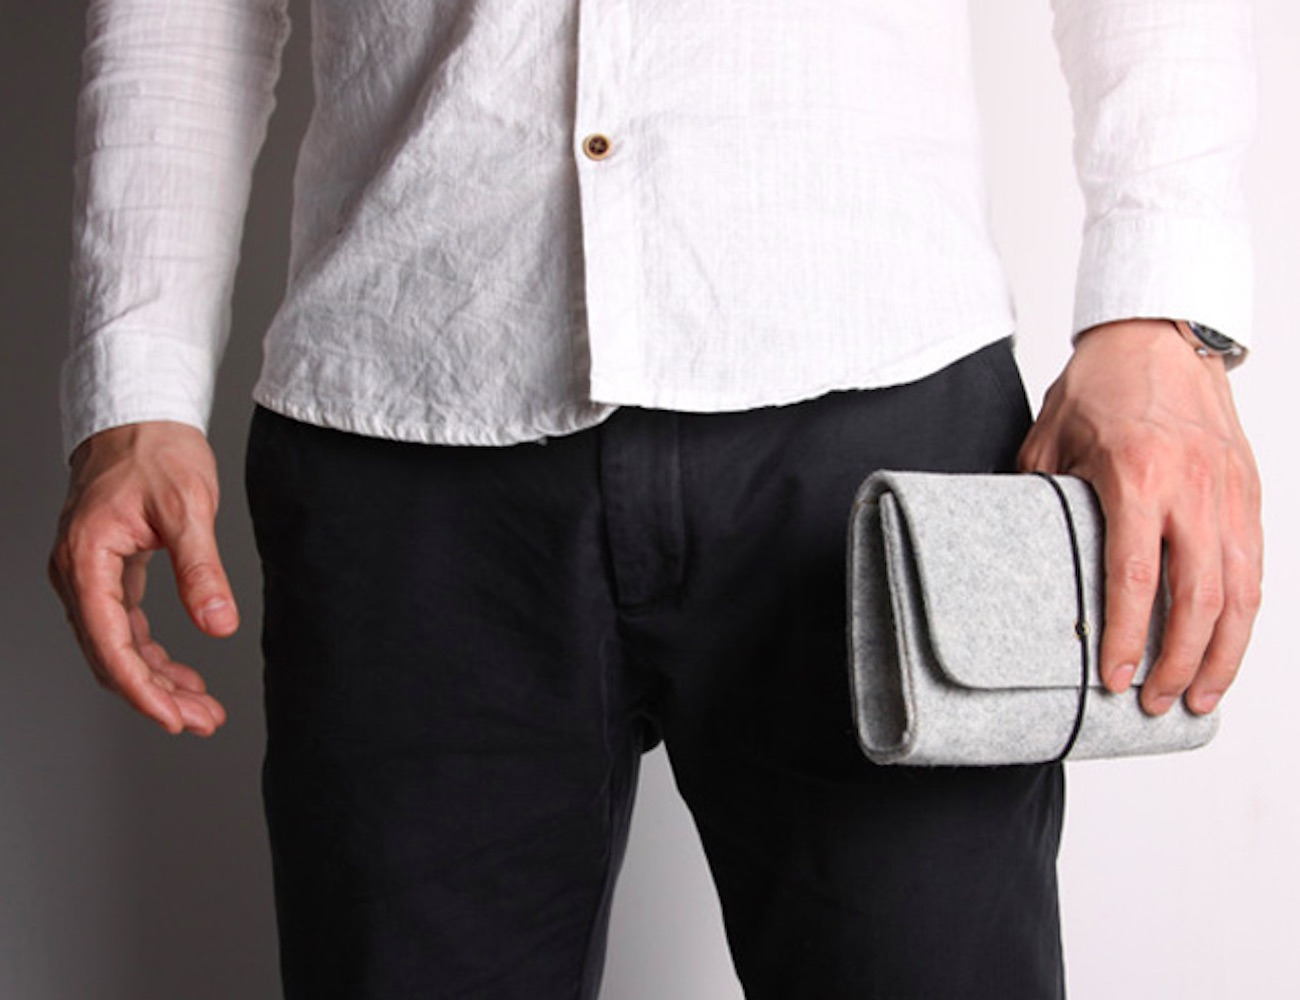 Mini Felt Digital Storage Pouch keeps your devices safe and secure